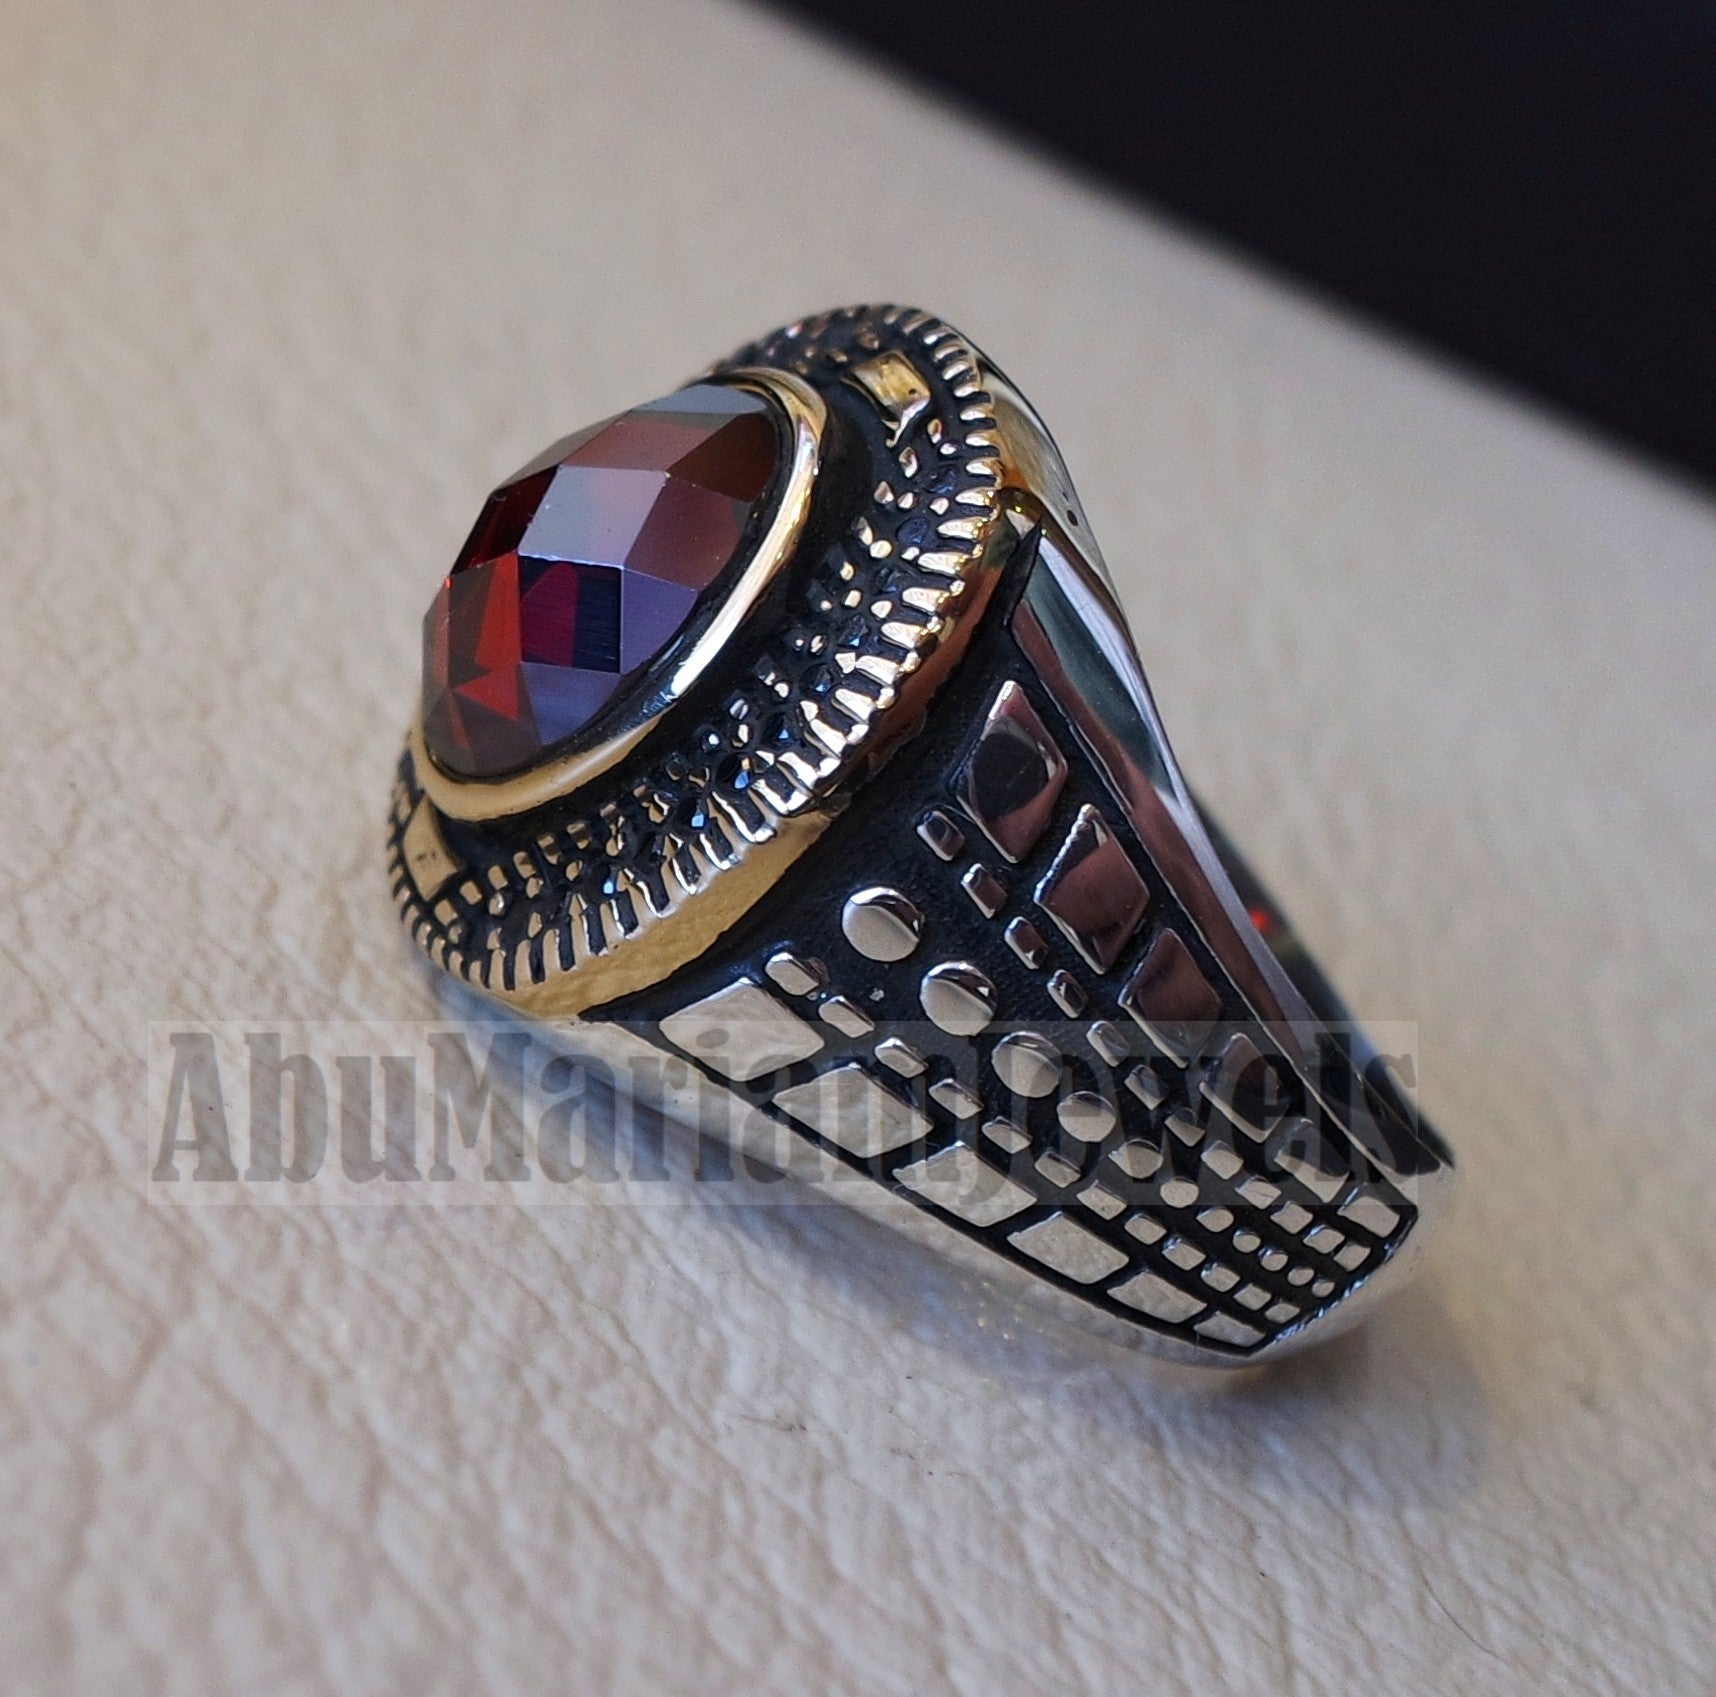 deep red ruby round synthetic imitation stone men ring sterling silver 925 bronze and black cubic zircon any size jewelry identical to genuine gemstone antique style